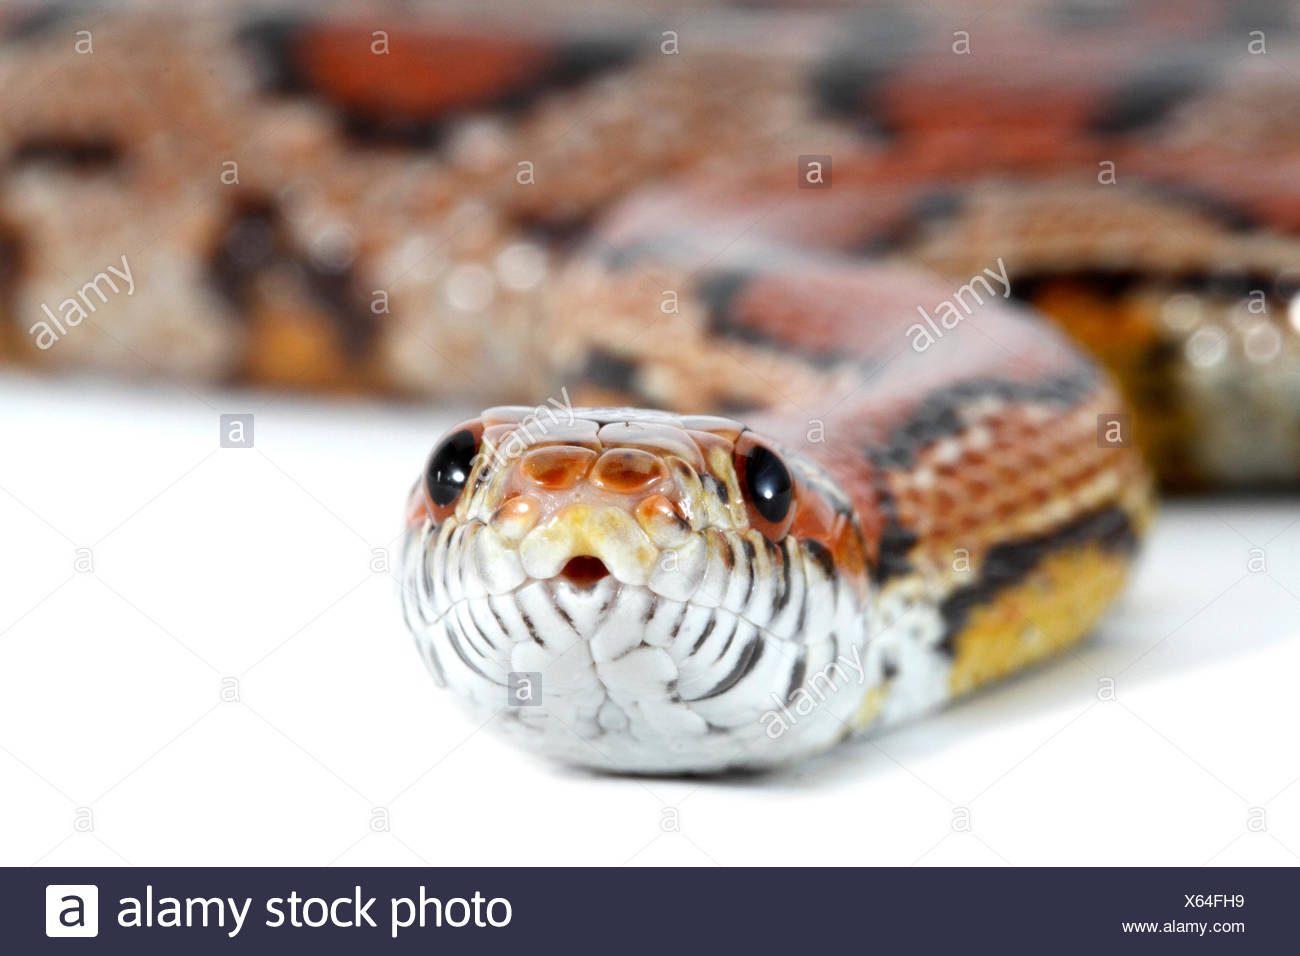 Cornsnake Stock Photos & Cornsnake Stock Images - Alamy